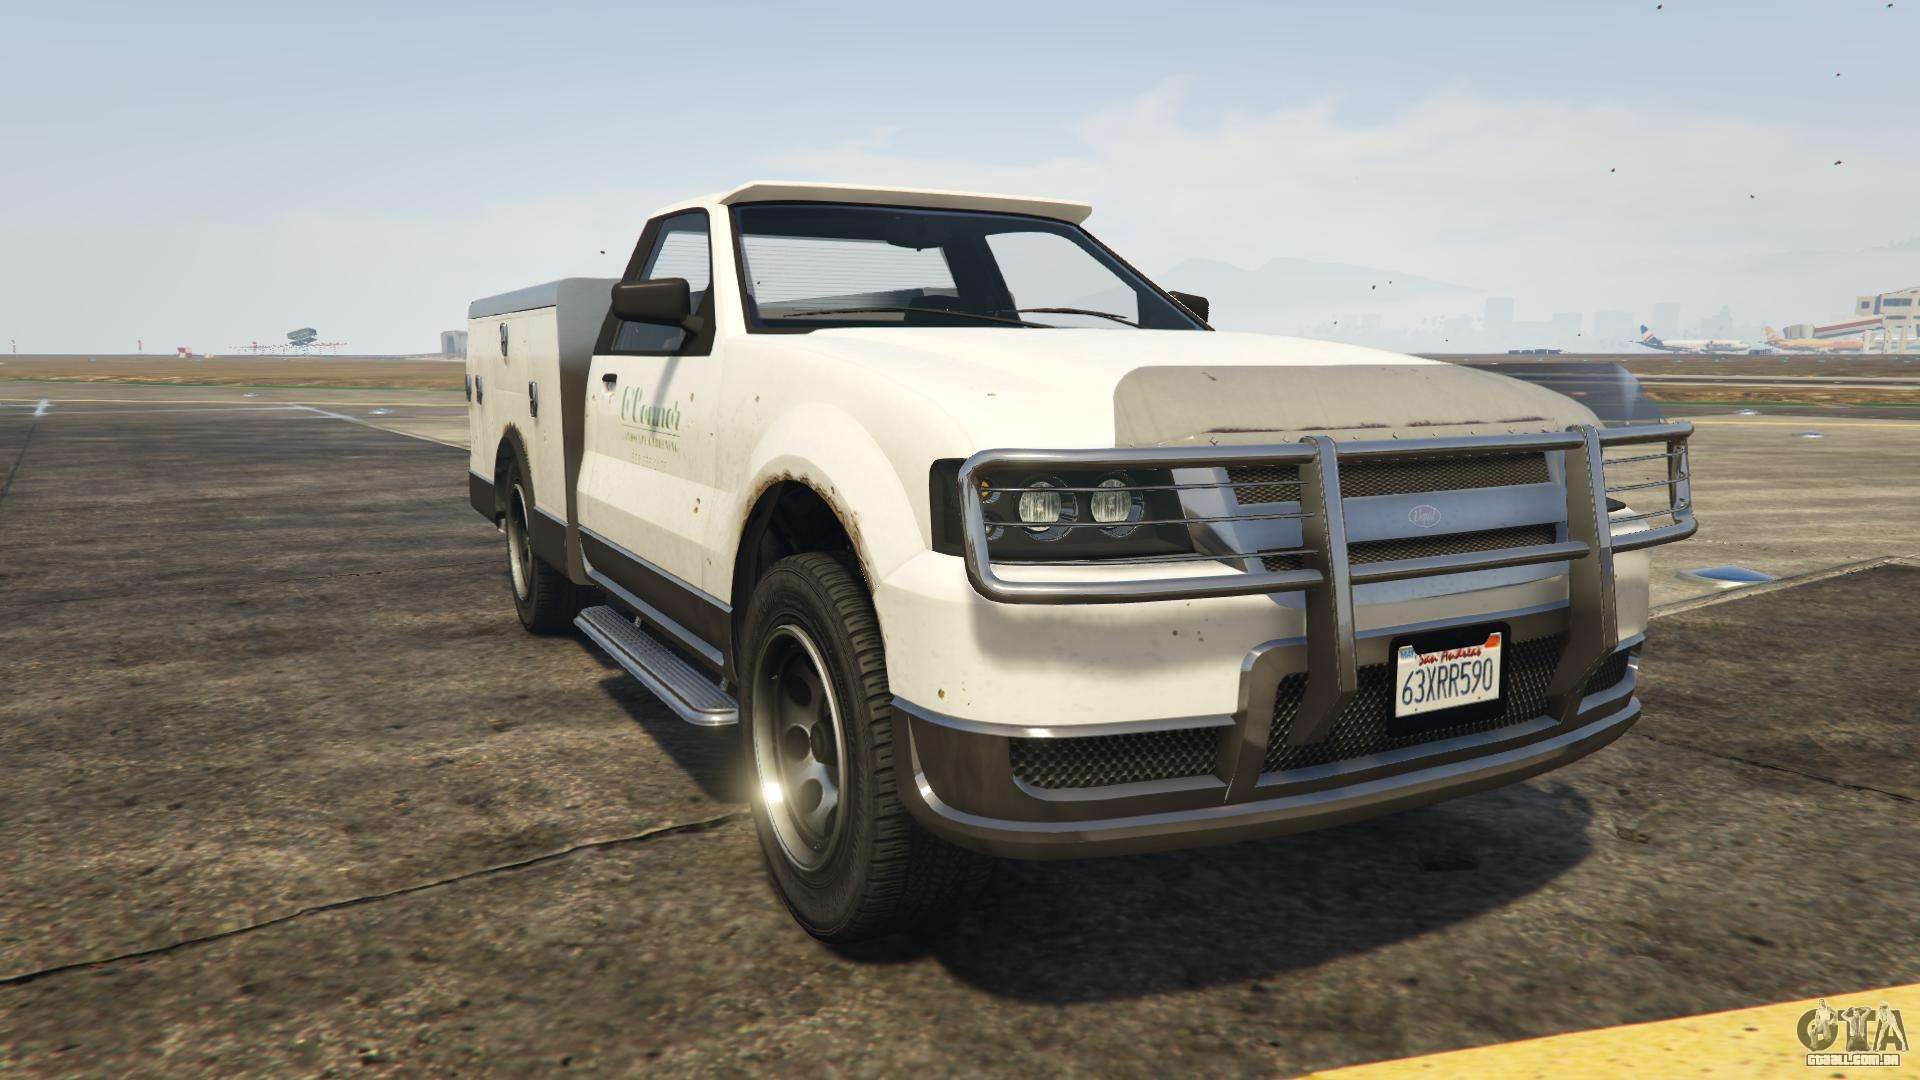 GTA 5 Vapid Utility Truck - vista frontal